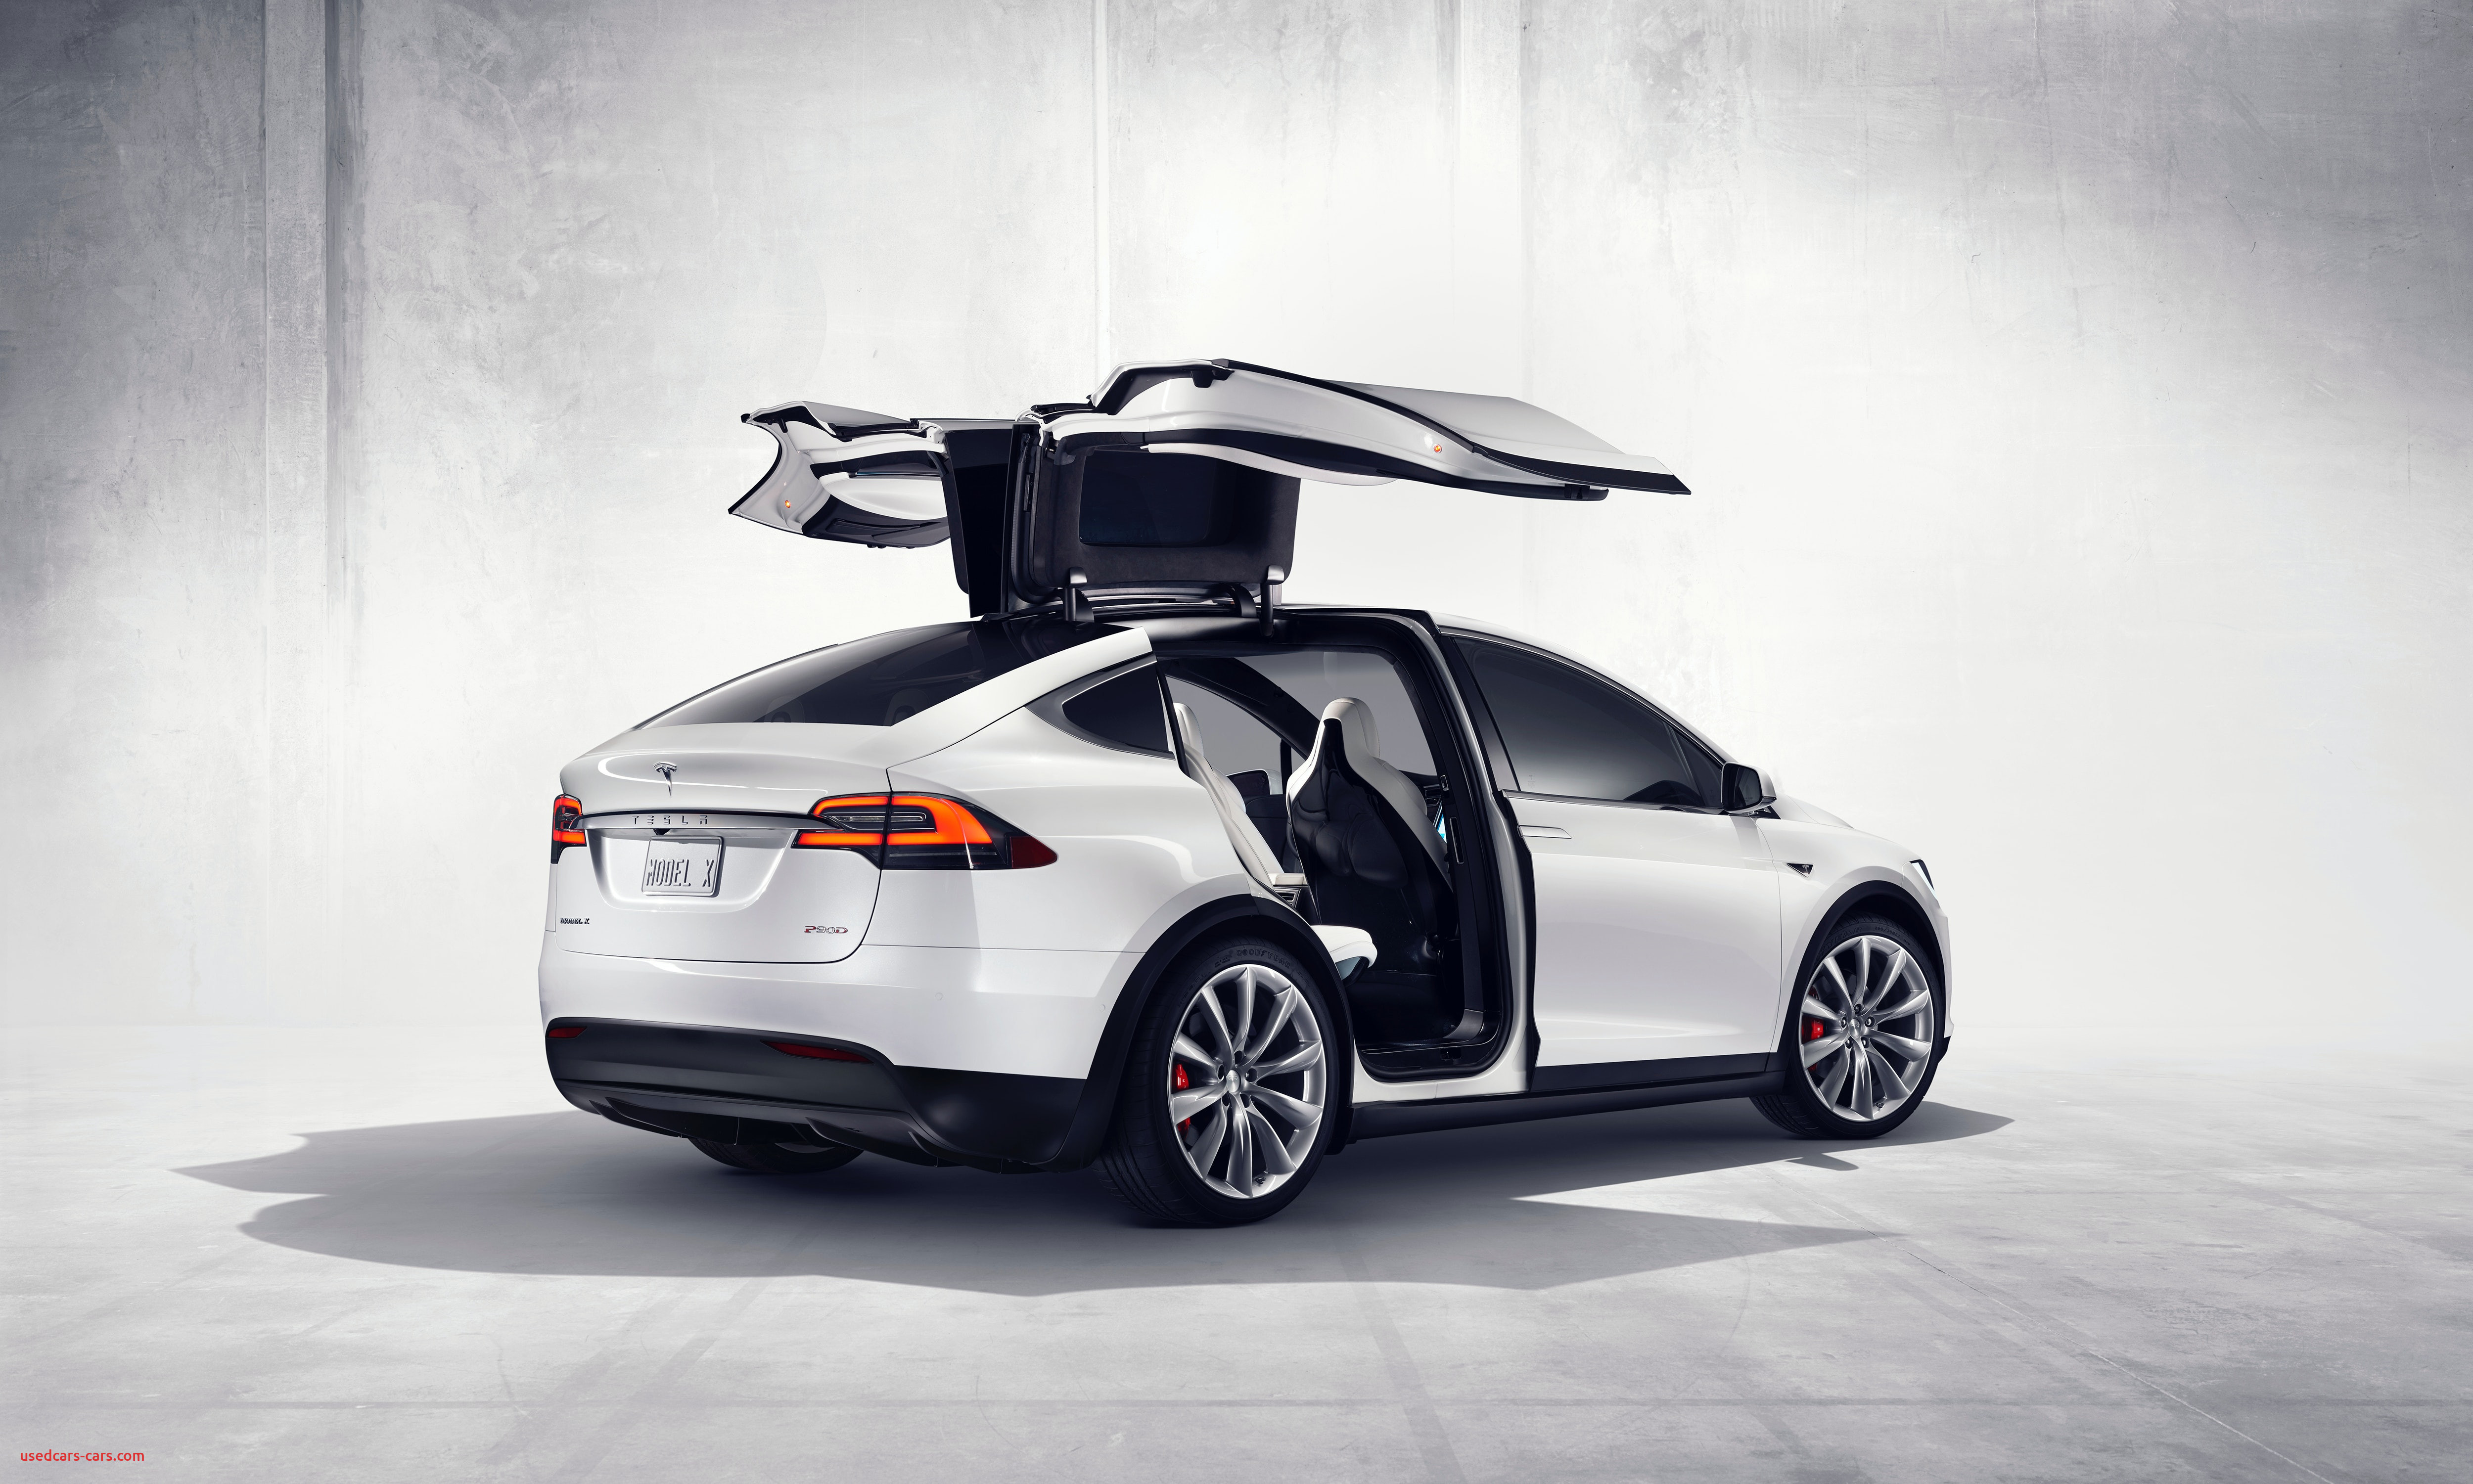 Inside Tesla Model S New Tesla S Electric Car Lineup Your Guide to the Model S 3 X